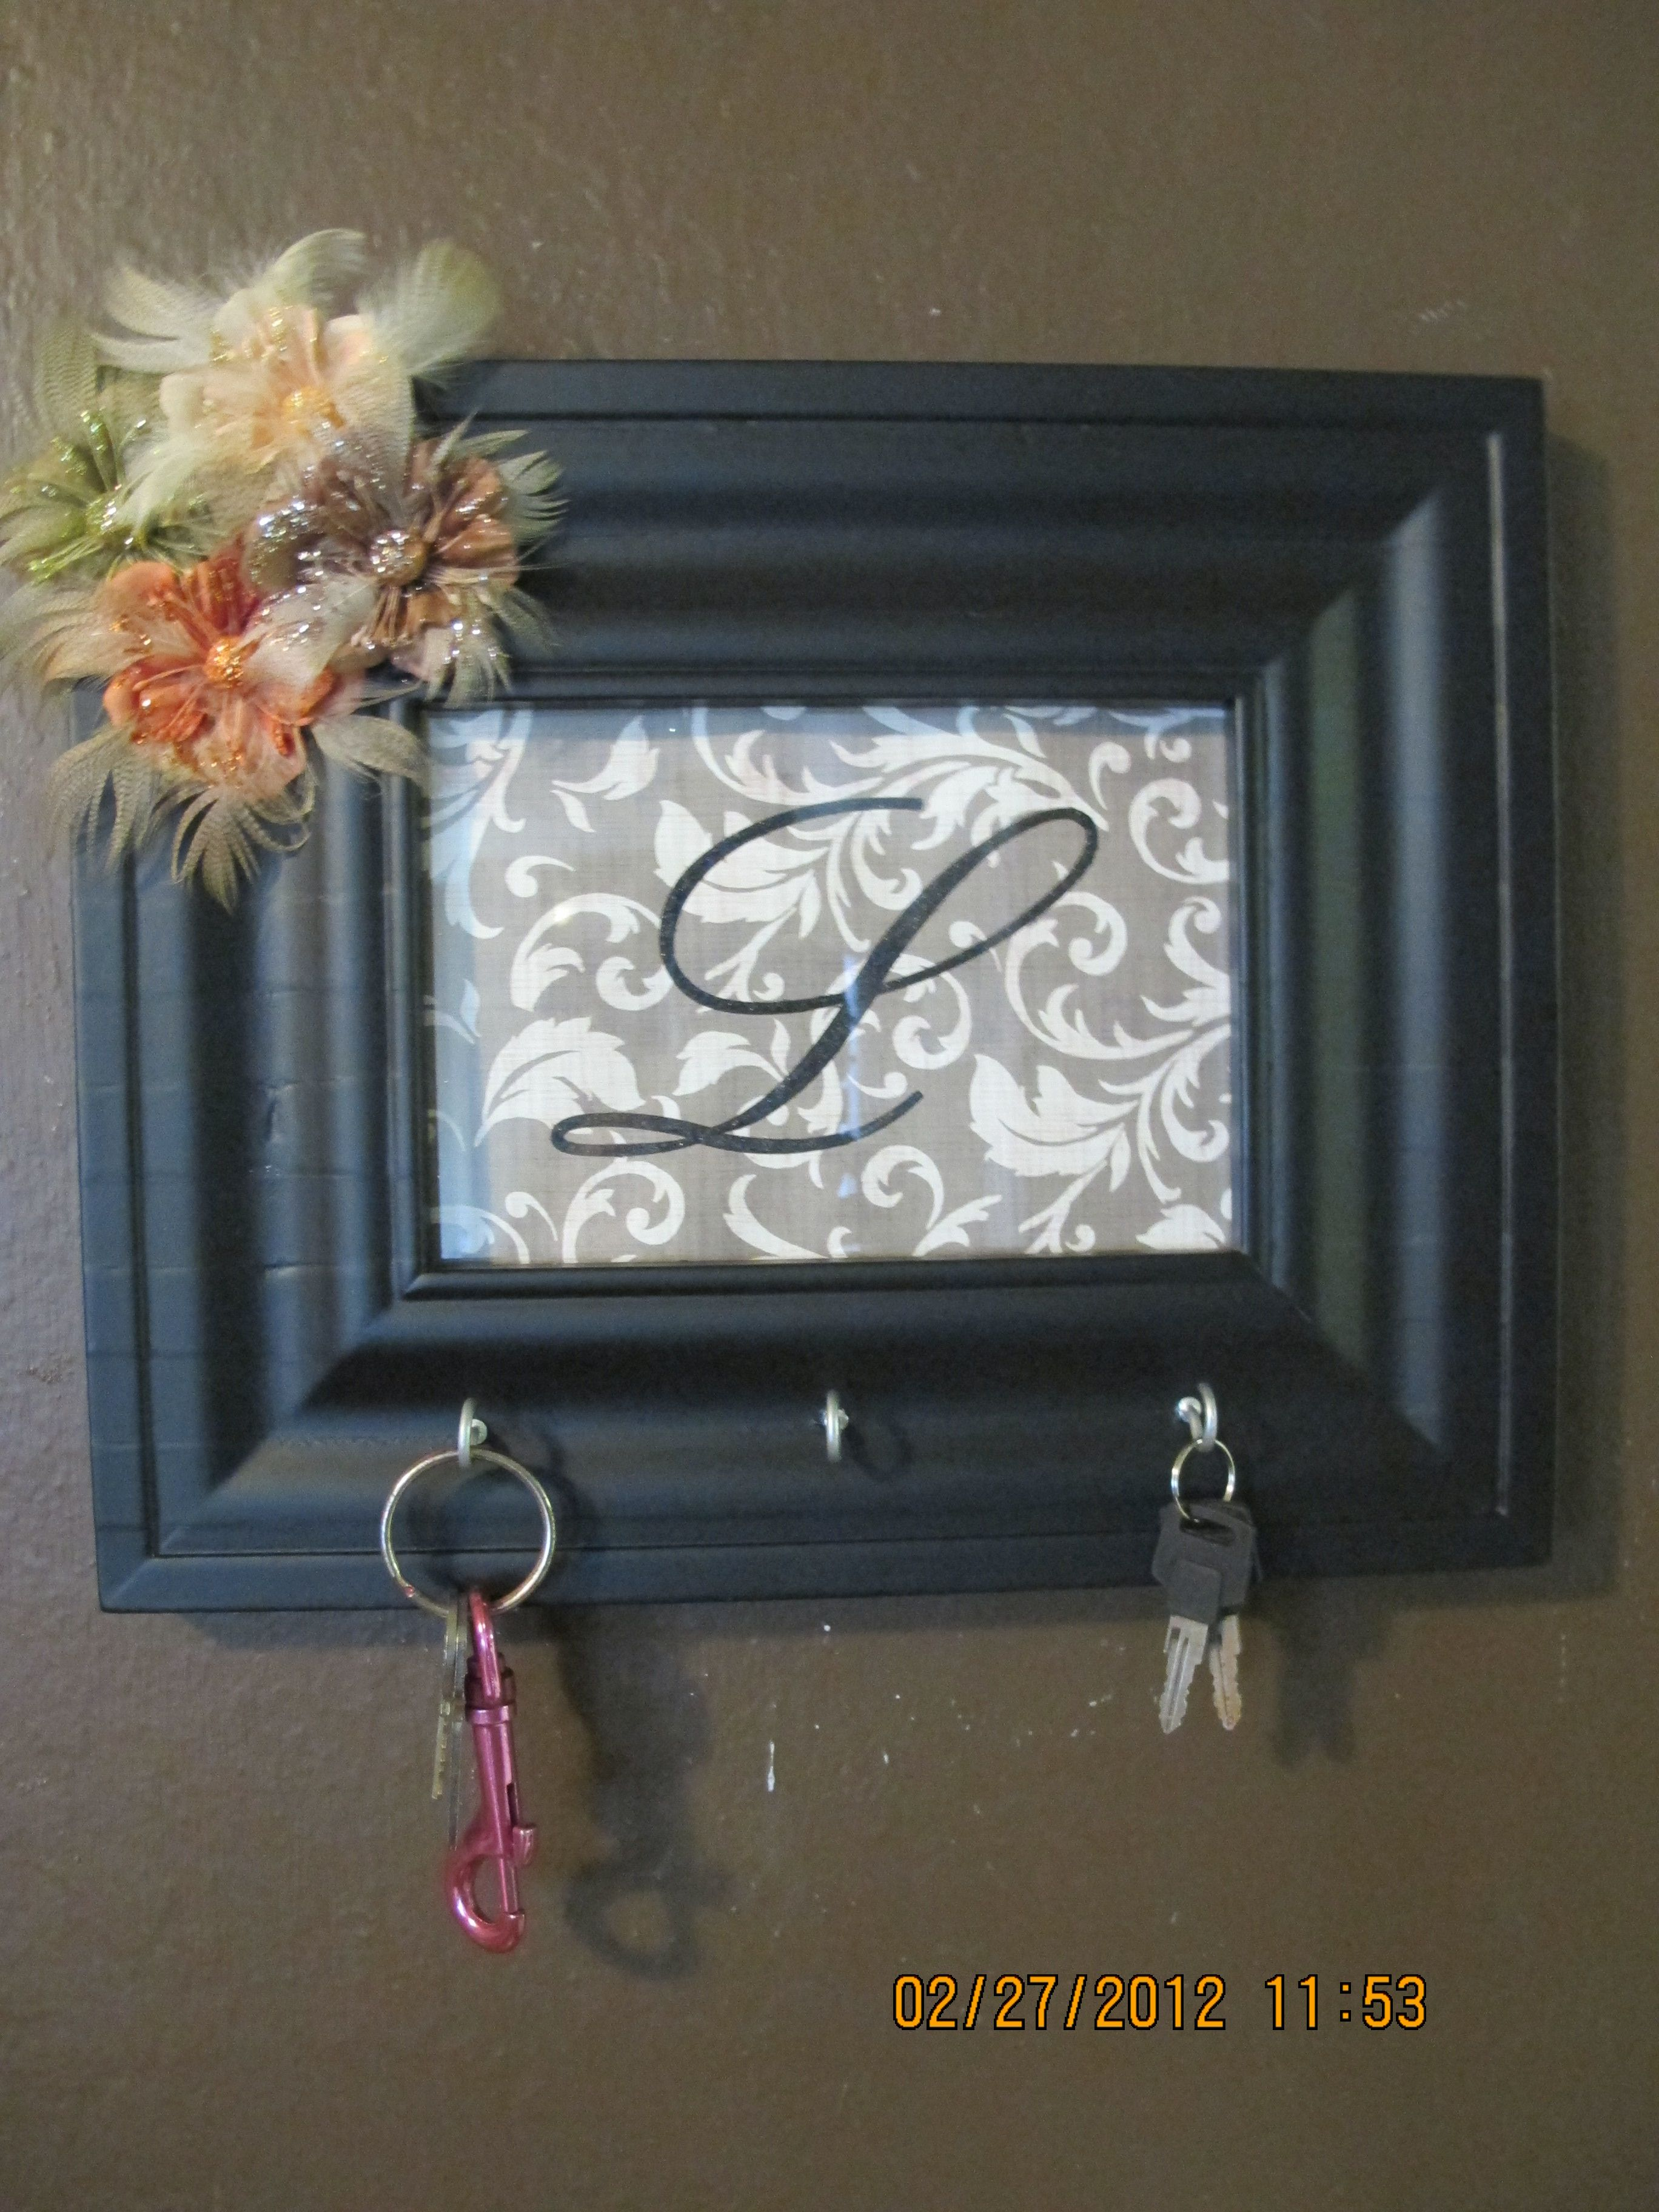 custom paper picture frames Making your own picture frames can be a fun and rewarding project, and one that saves you some dough compared to paying for custom framing but there are a few tips to keep in mind that will make .